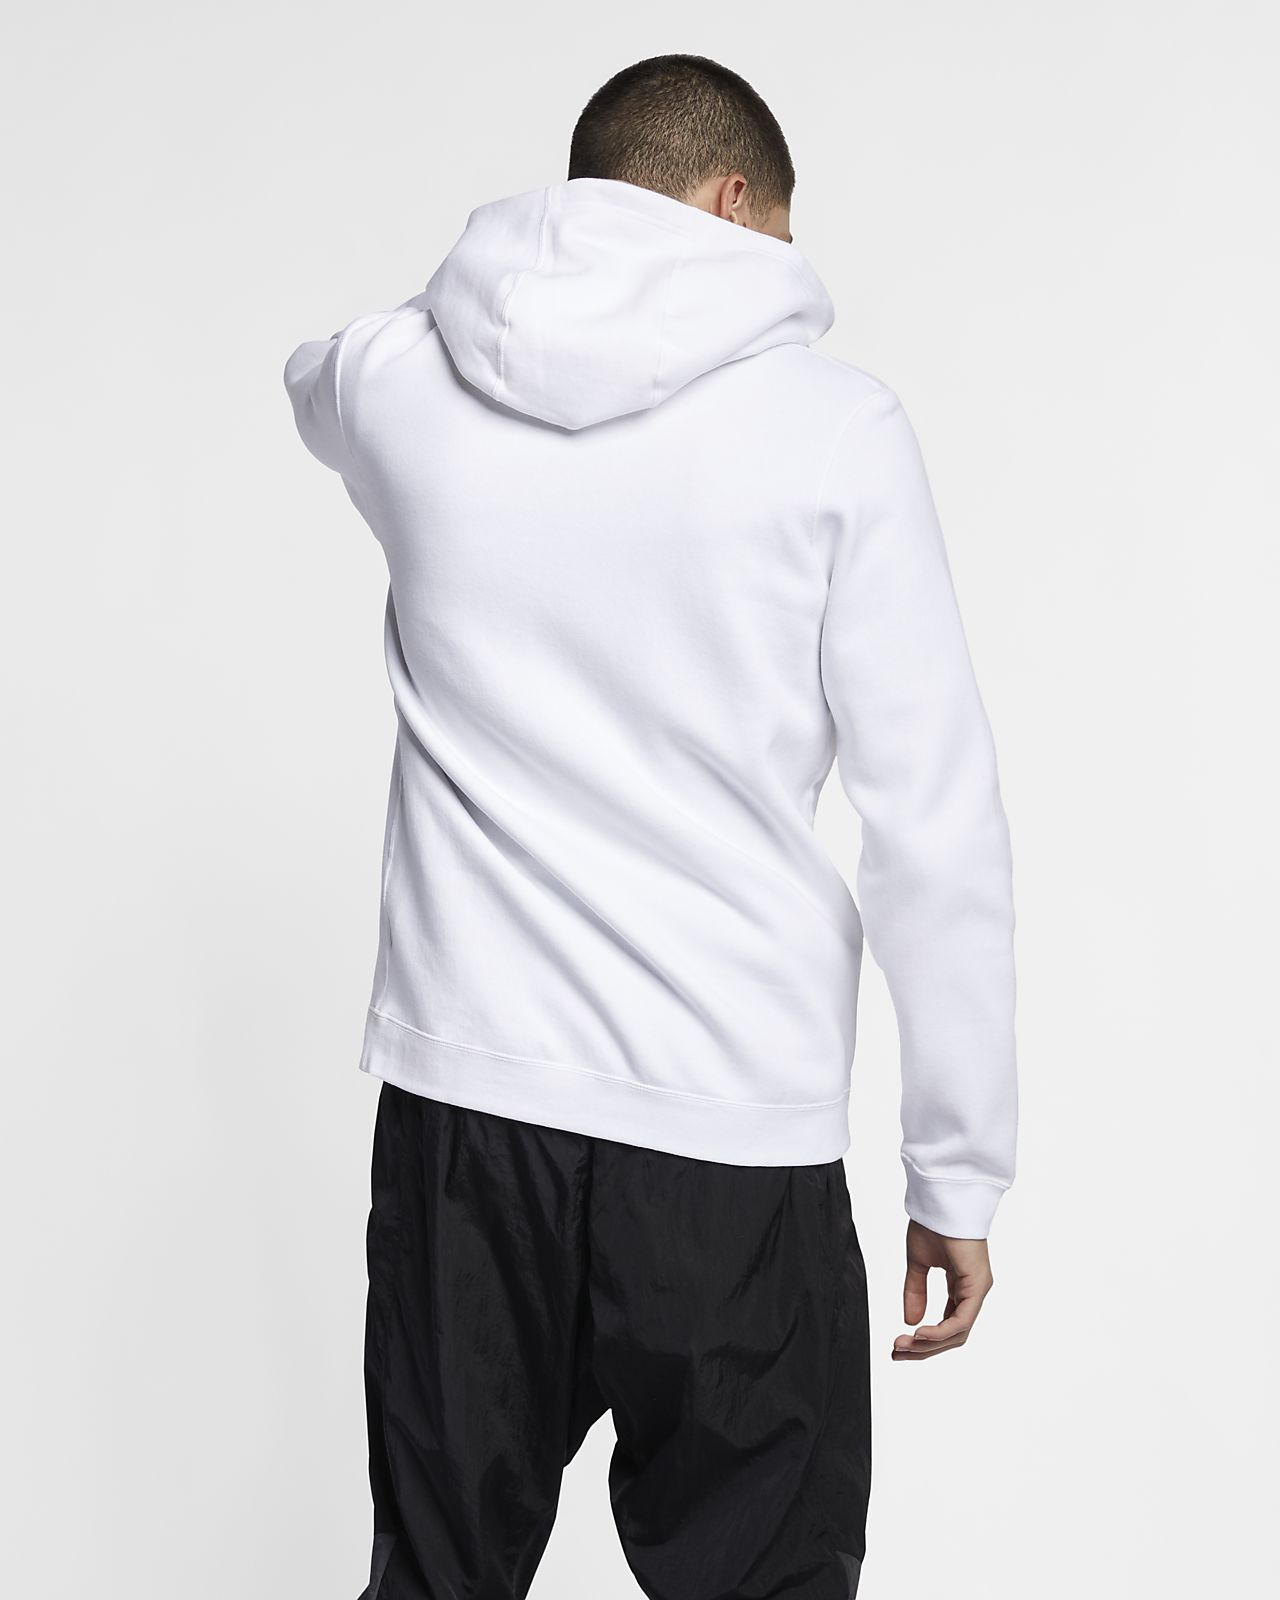 e6a7dab1a Low Resolution Nike Sportswear Club Fleece Hoodie Nike Sportswear Club  Fleece Hoodie